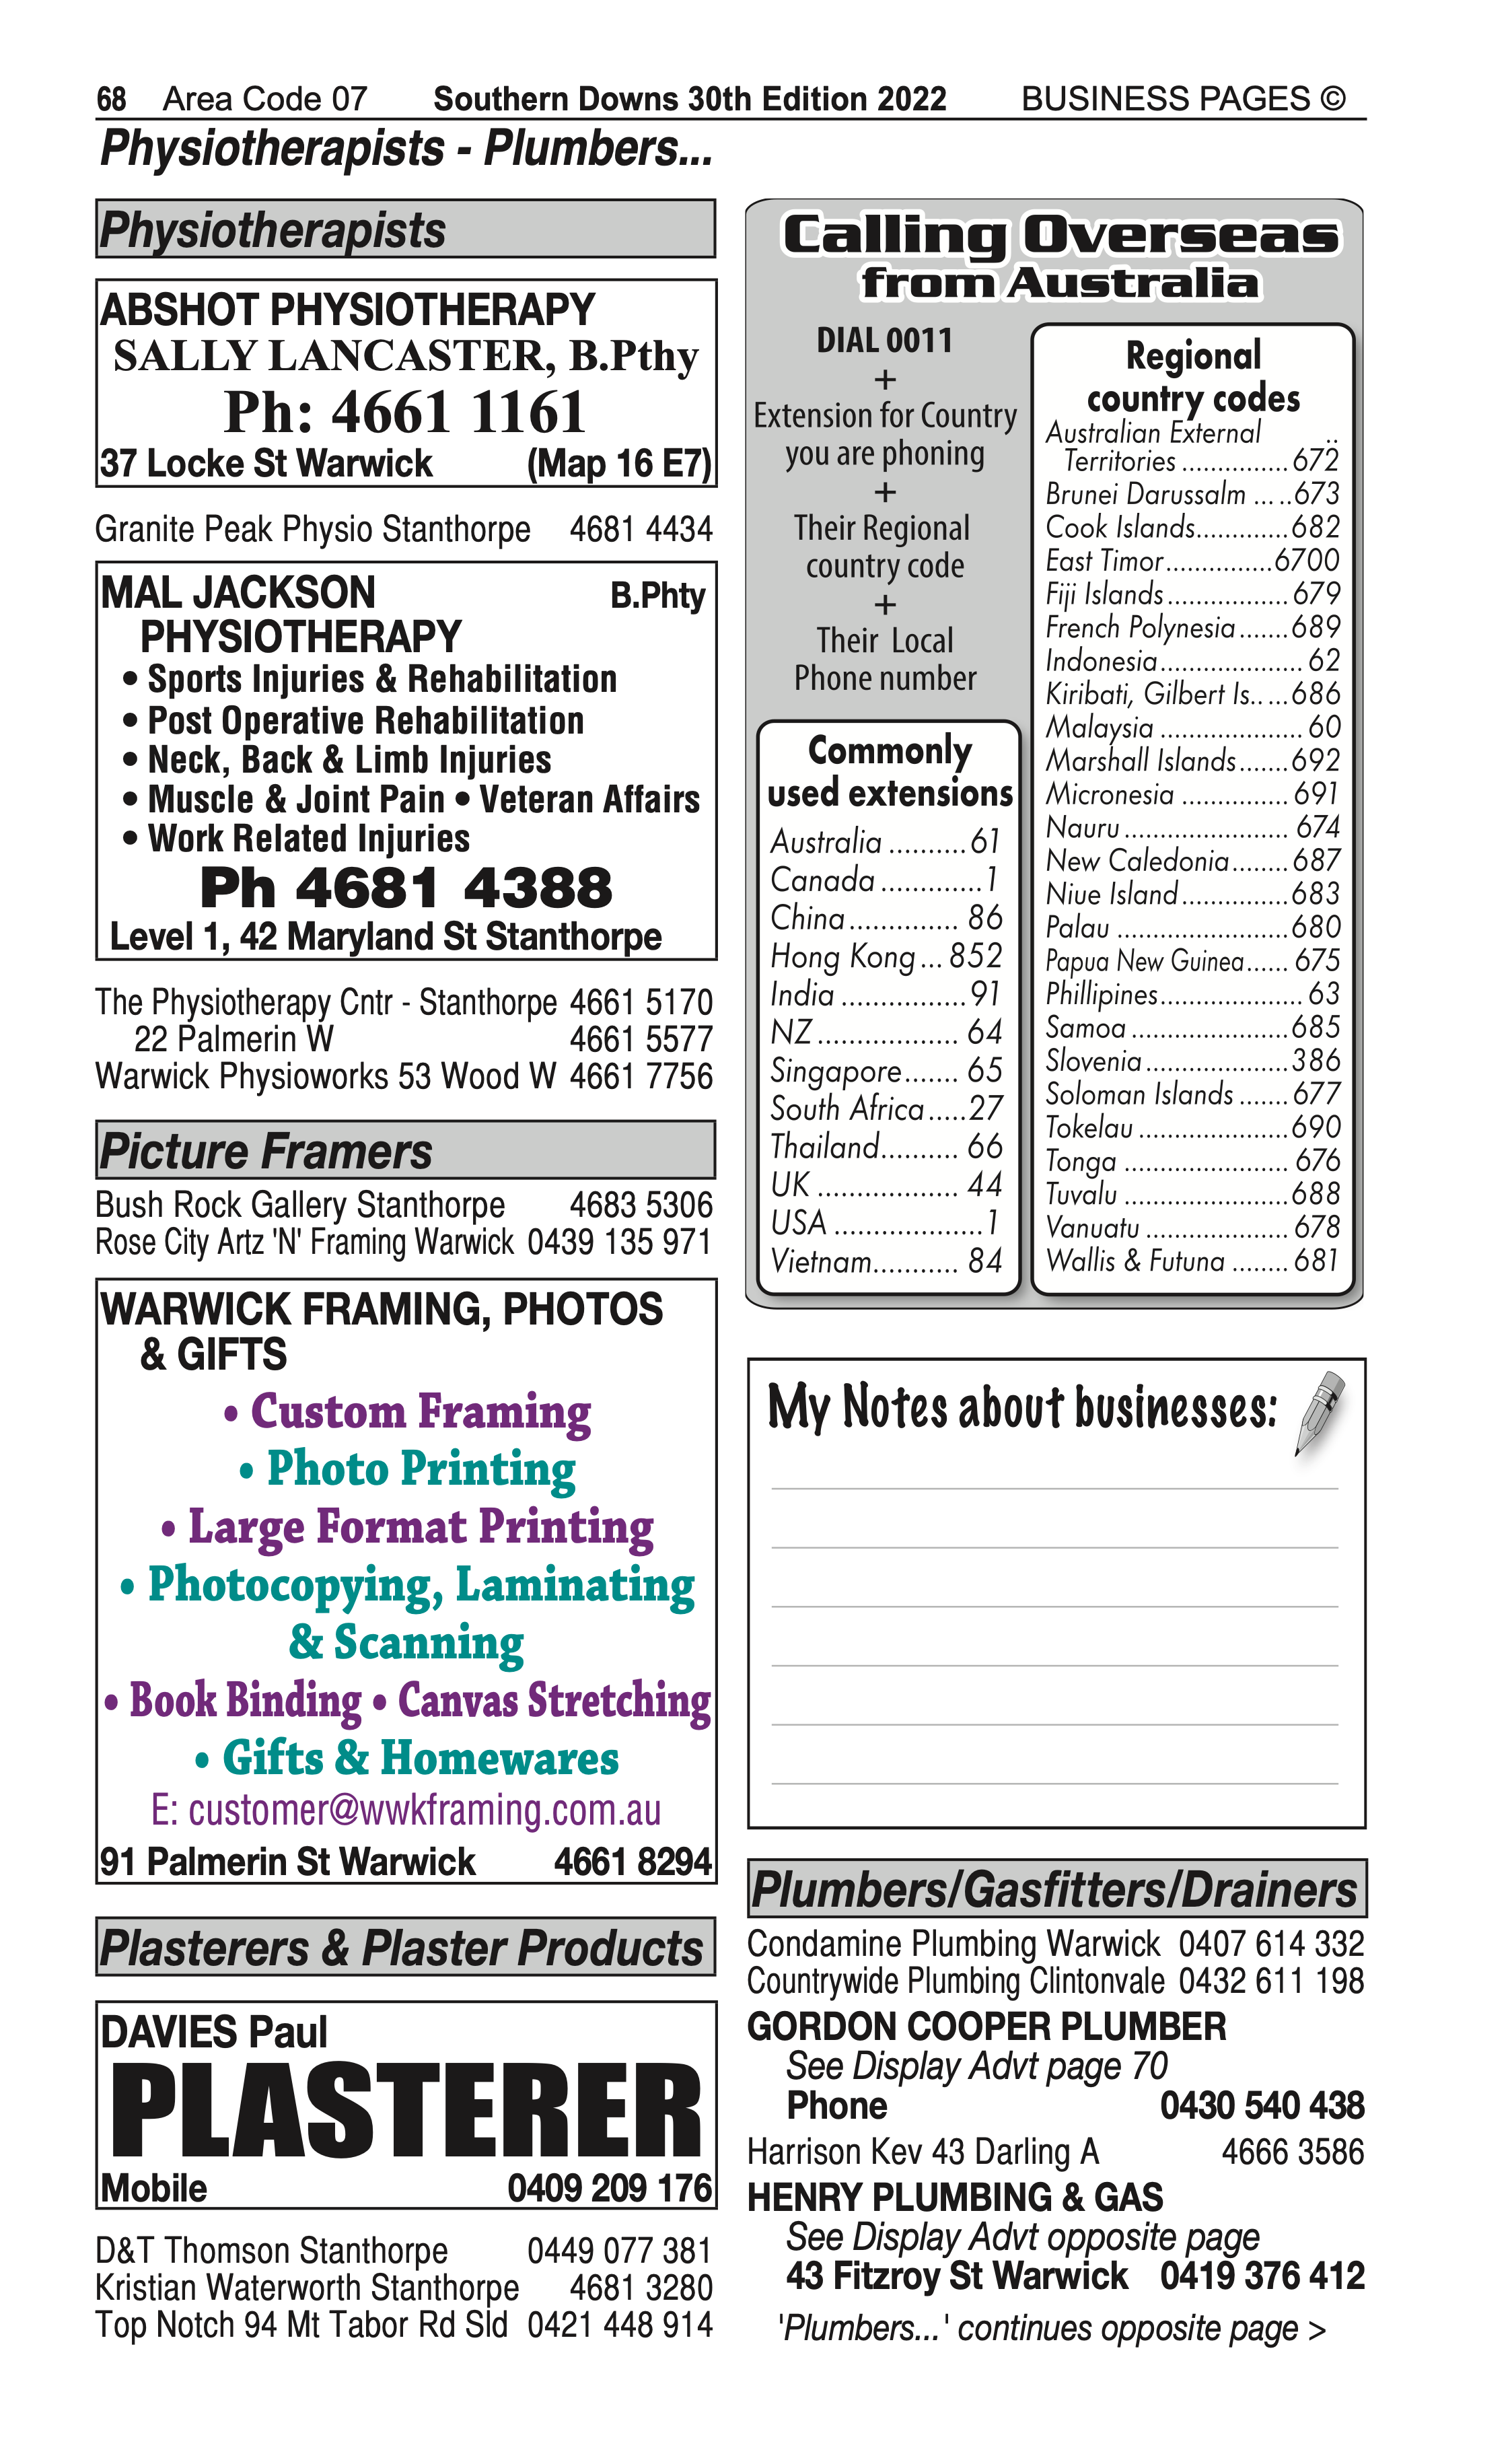 Stanthorpe Medical Clinic | Medical in Stanthorpe | PBezy Pocket Books local directories - page 68